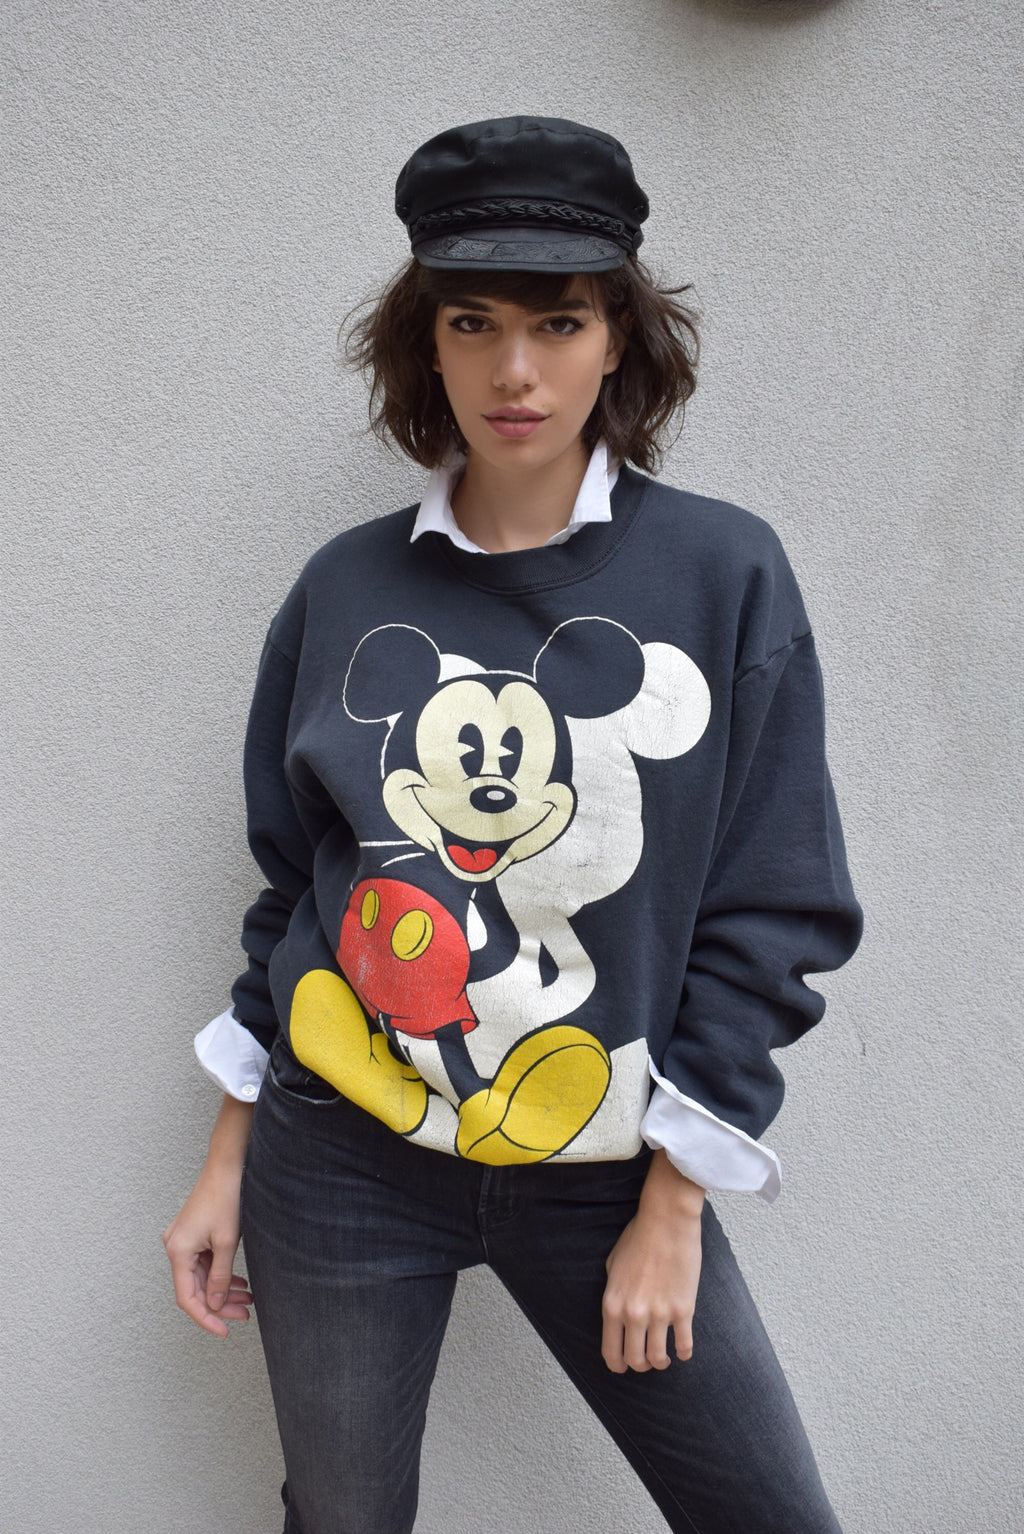 1990's vintage Mickey Mouse by Walt Disney sweatshirt 'XL'